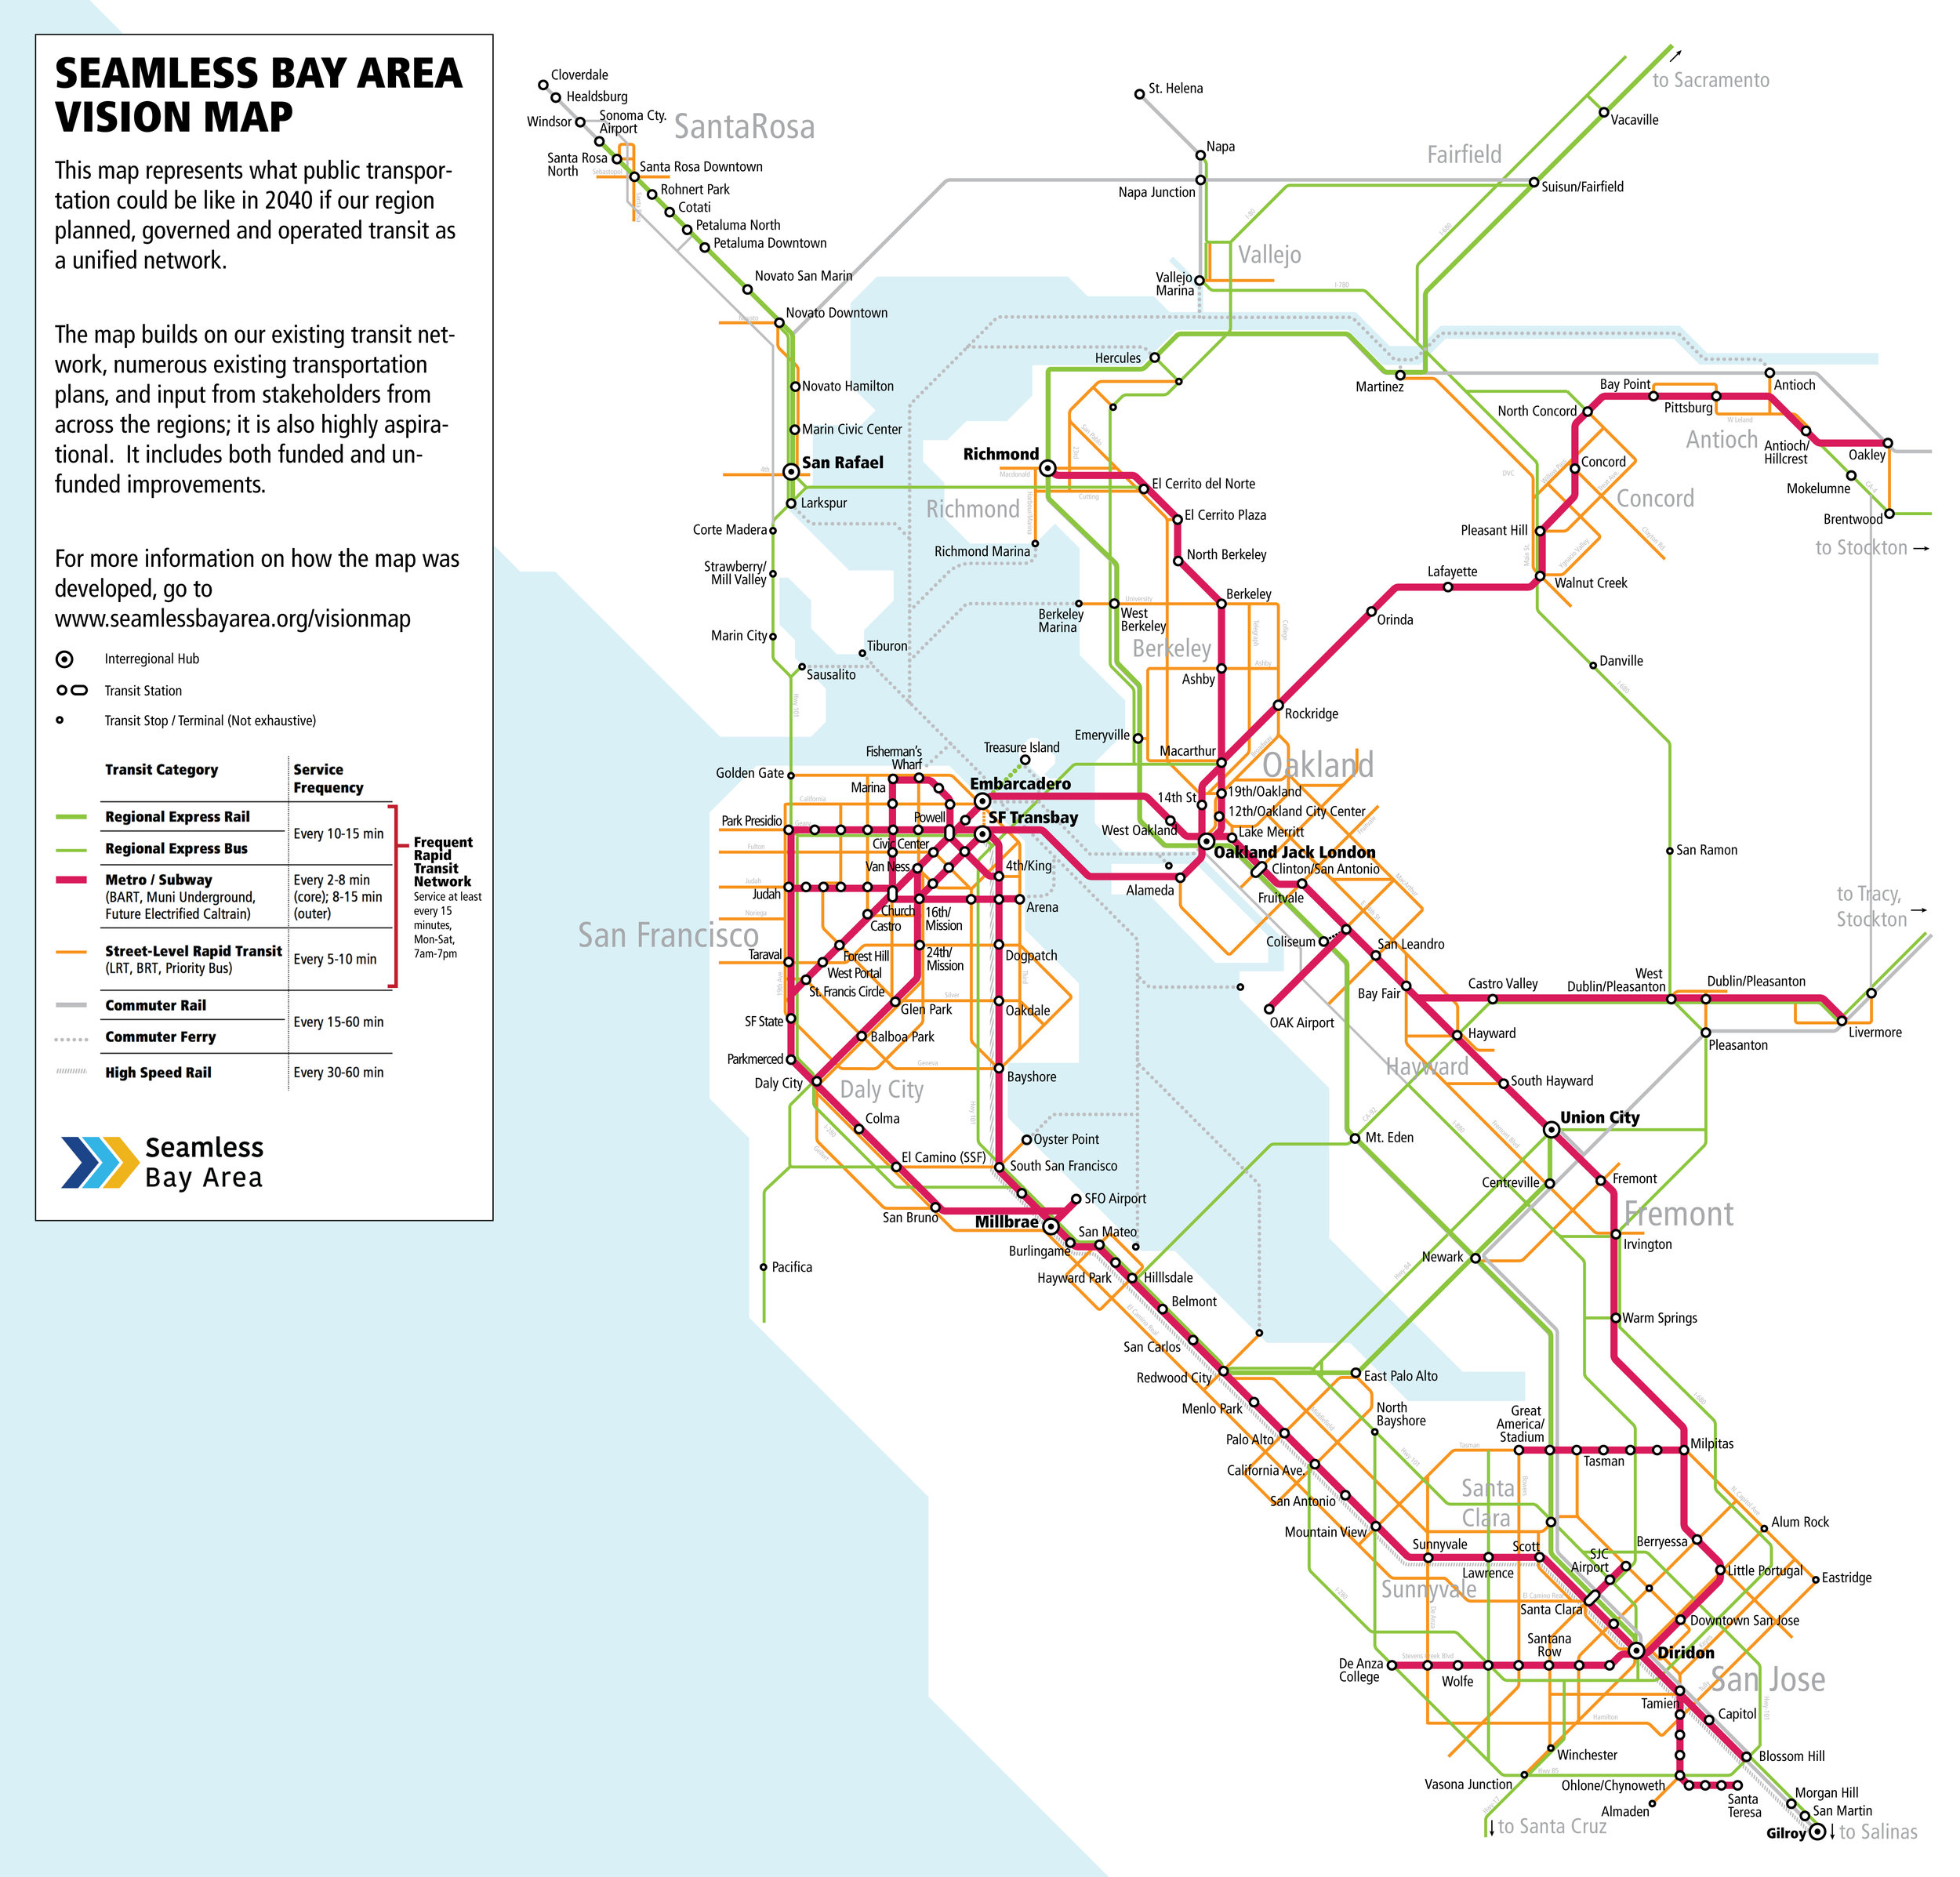 Vision Map Seamless Bay Area Your train journey would be an unforgettable adventure to traverse different cities, view various kinds of you can contact us to get more cities available with high speed trains, for the china train travel map below only offers a rough overview of cities connected by high speed train. vision map seamless bay area